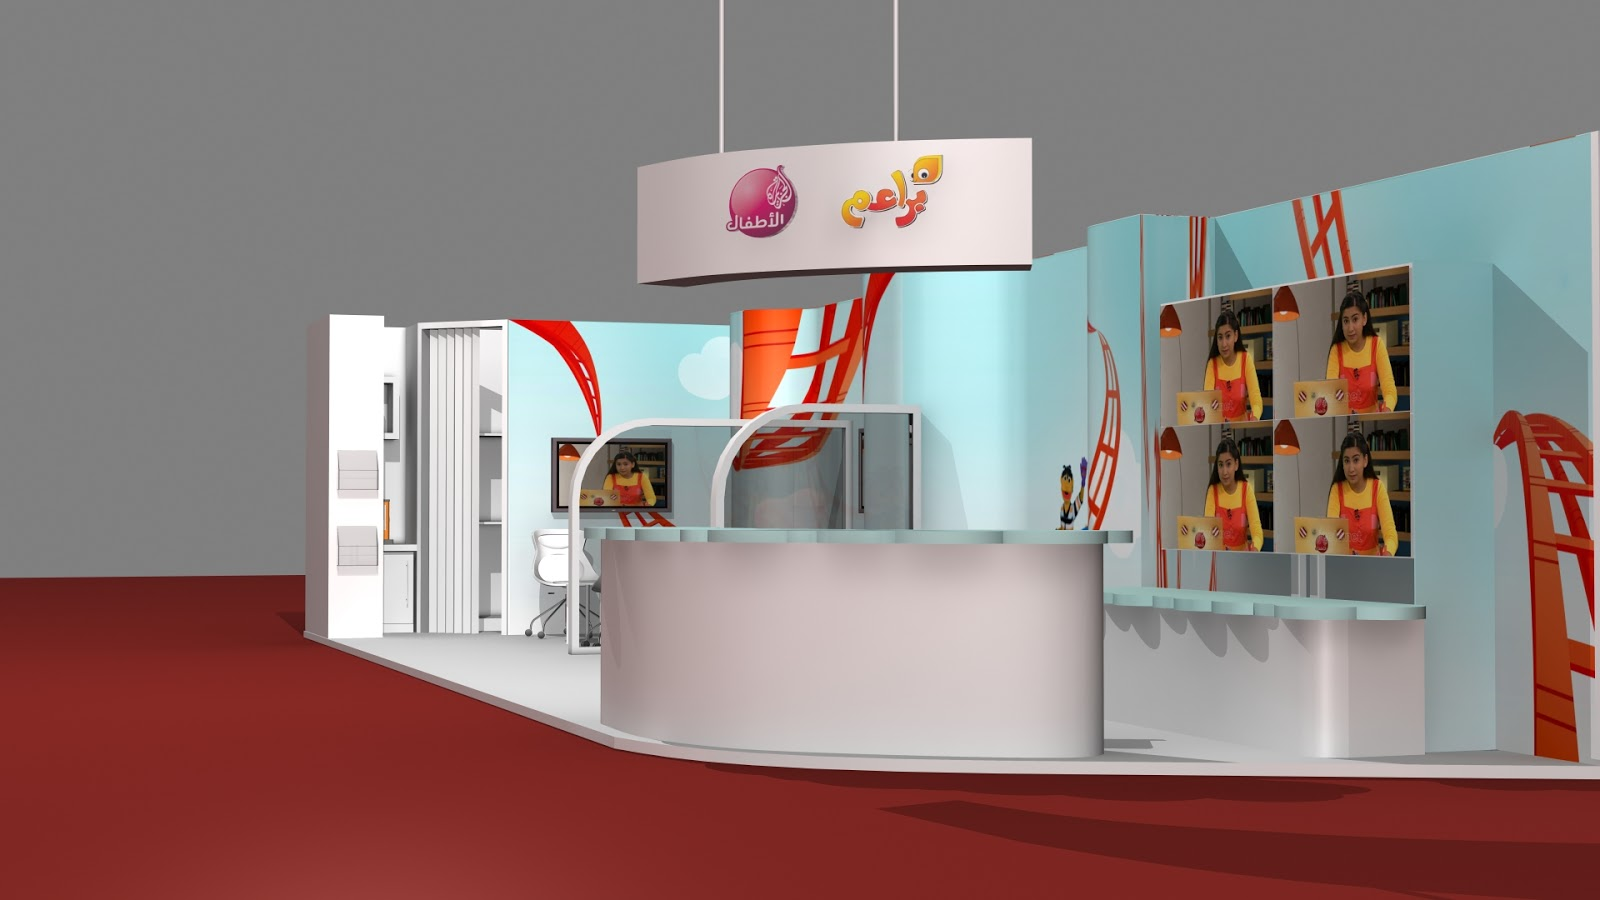 3d Exhibition Booth : Sajid designer d exhibition booth model